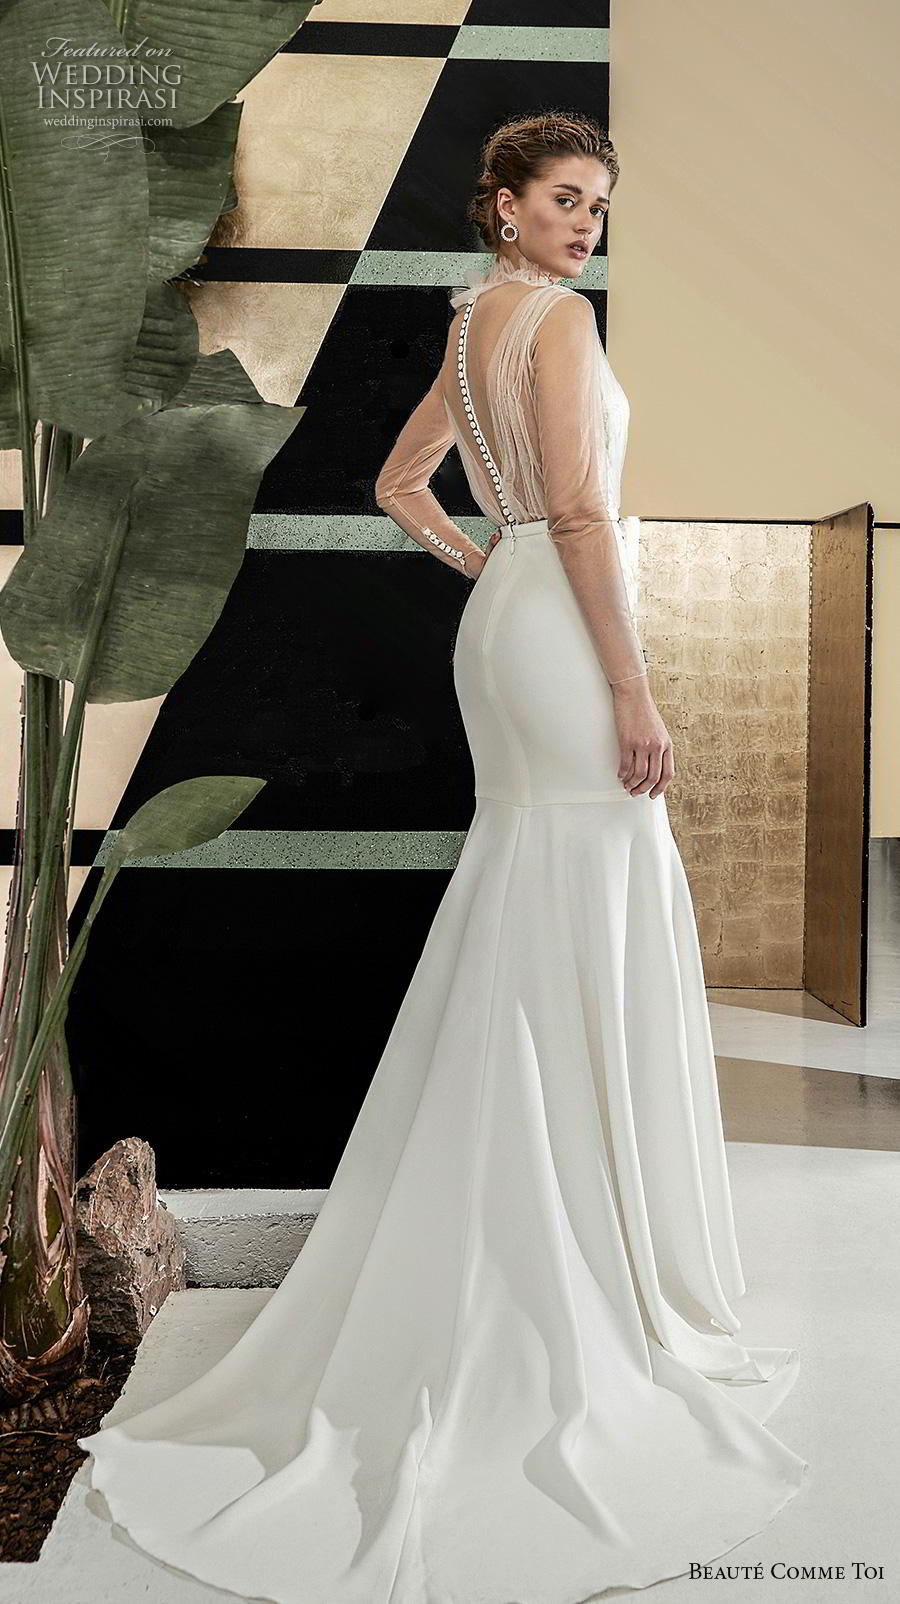 beaute comme toi 2019 bridal sheer long sleeves illusion high neck deep v neck heavily embellished bodice elegant fit and flare wedding dress sheer button back chapel train (helain) bv